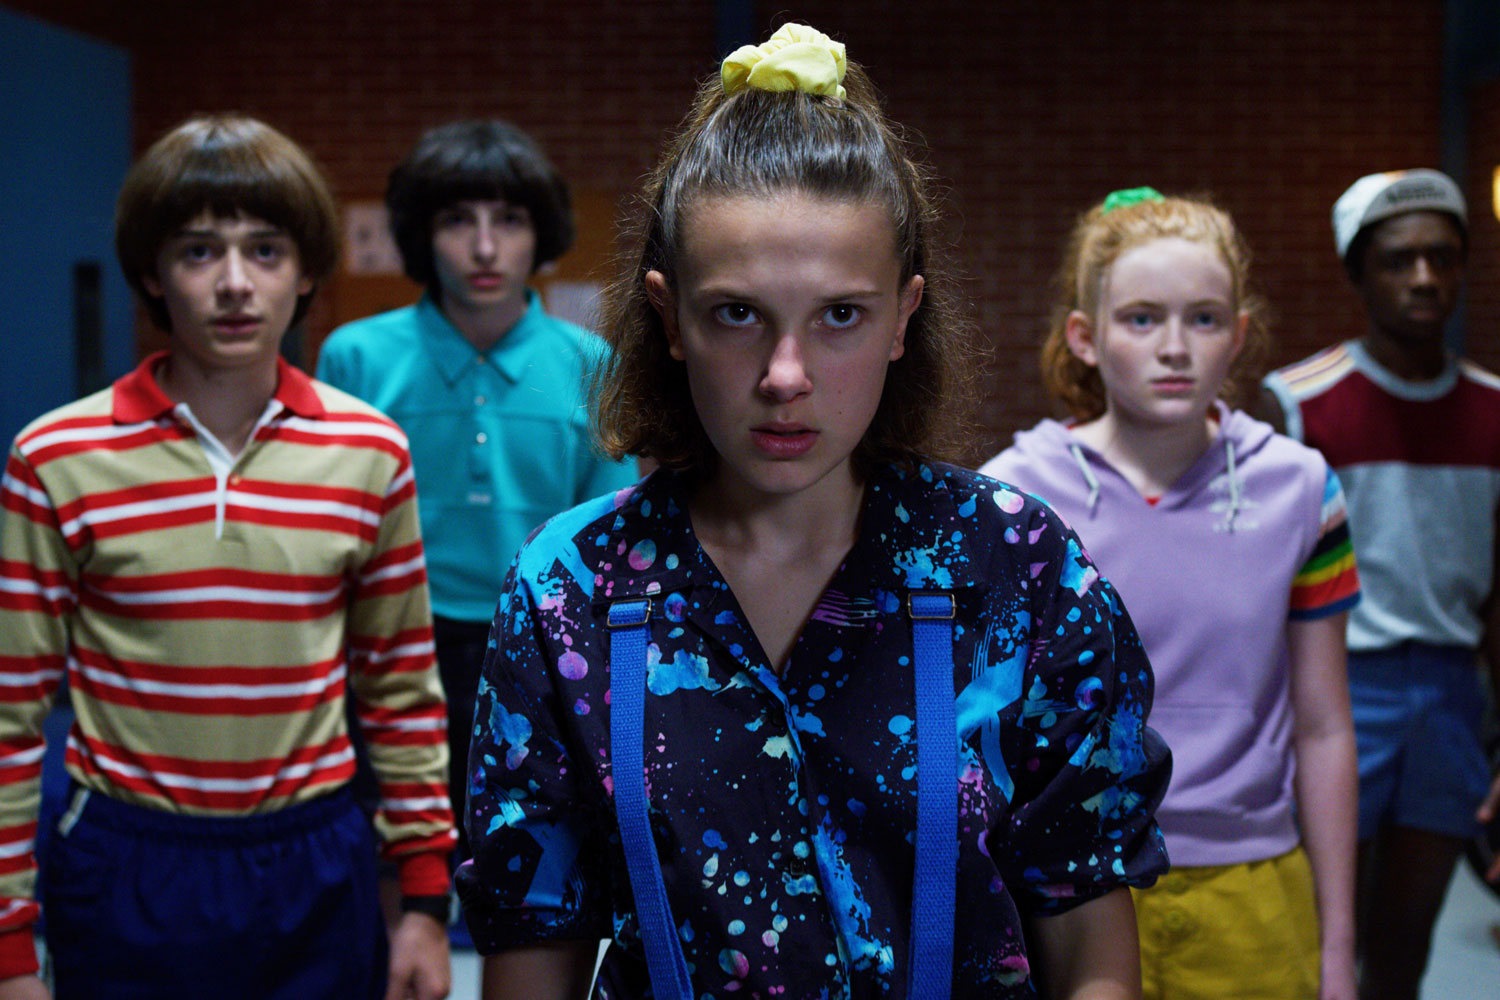 'Stranger Things 3' Review: Hormones, Hot Nights, and A Really Good Hang